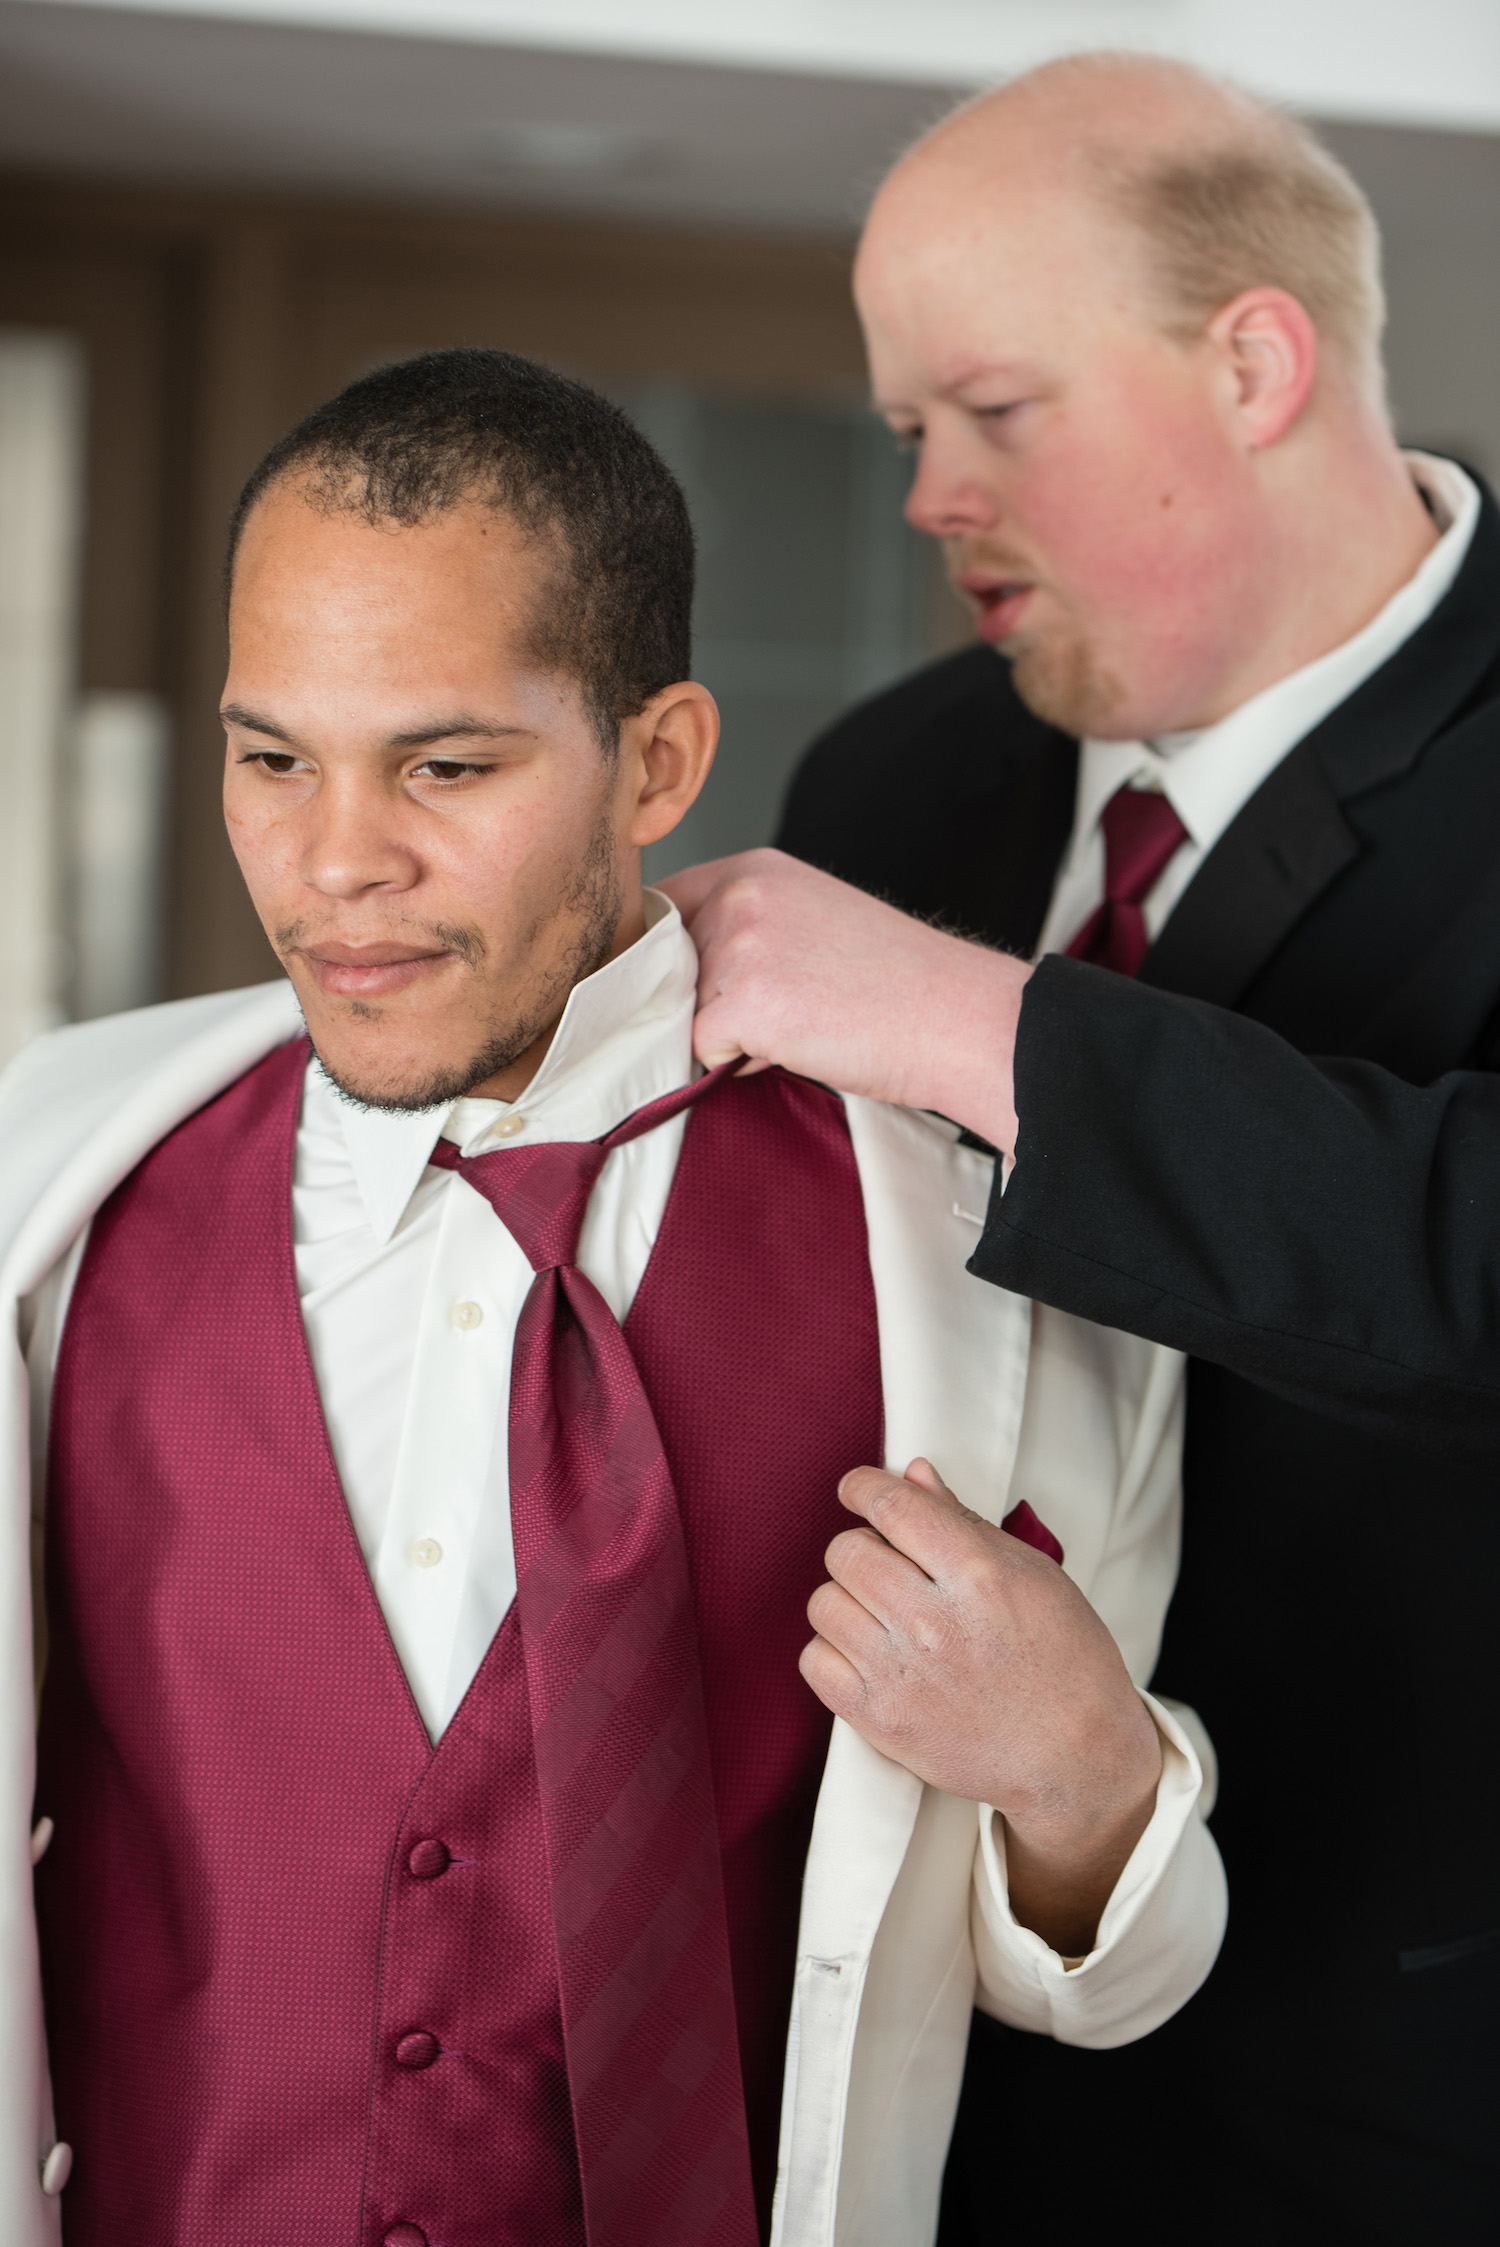 Danielle Albrecht wedding photo | groom getting ready | white suit